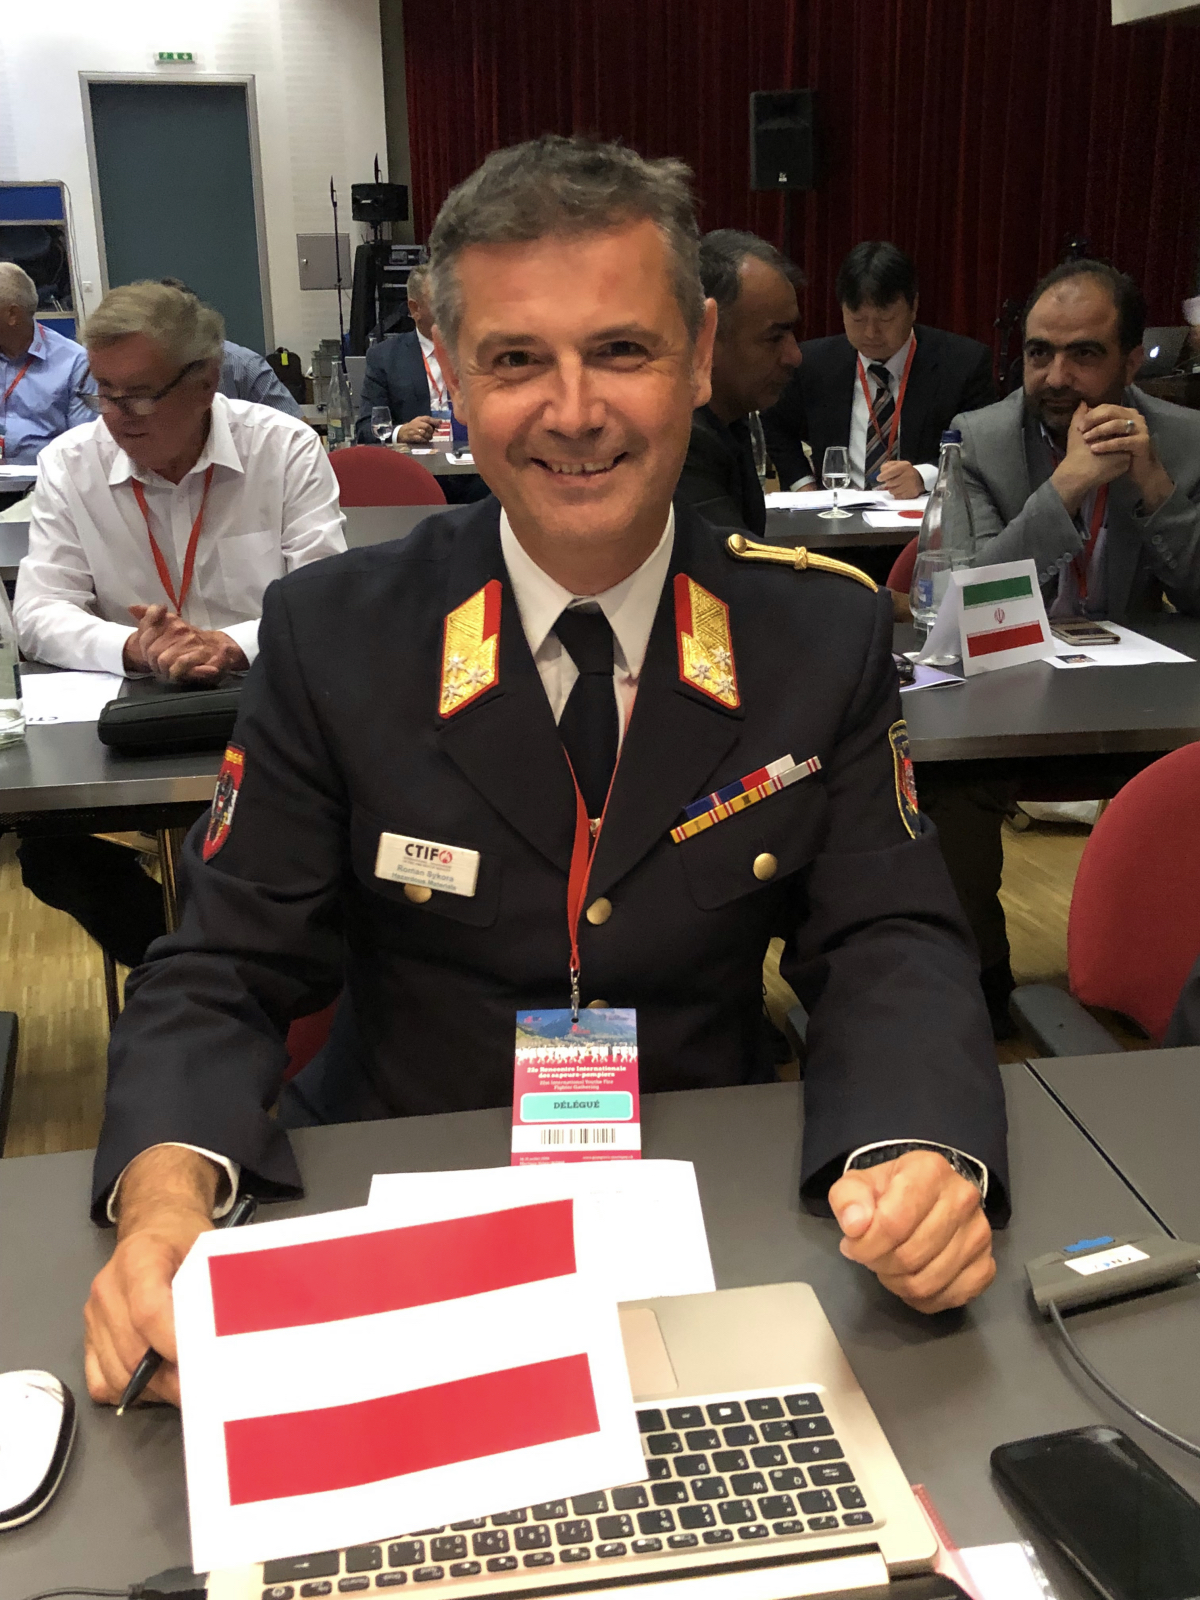 Roman Sykora, General Secretary of the CTIF Executive Board as of July 19, 2019